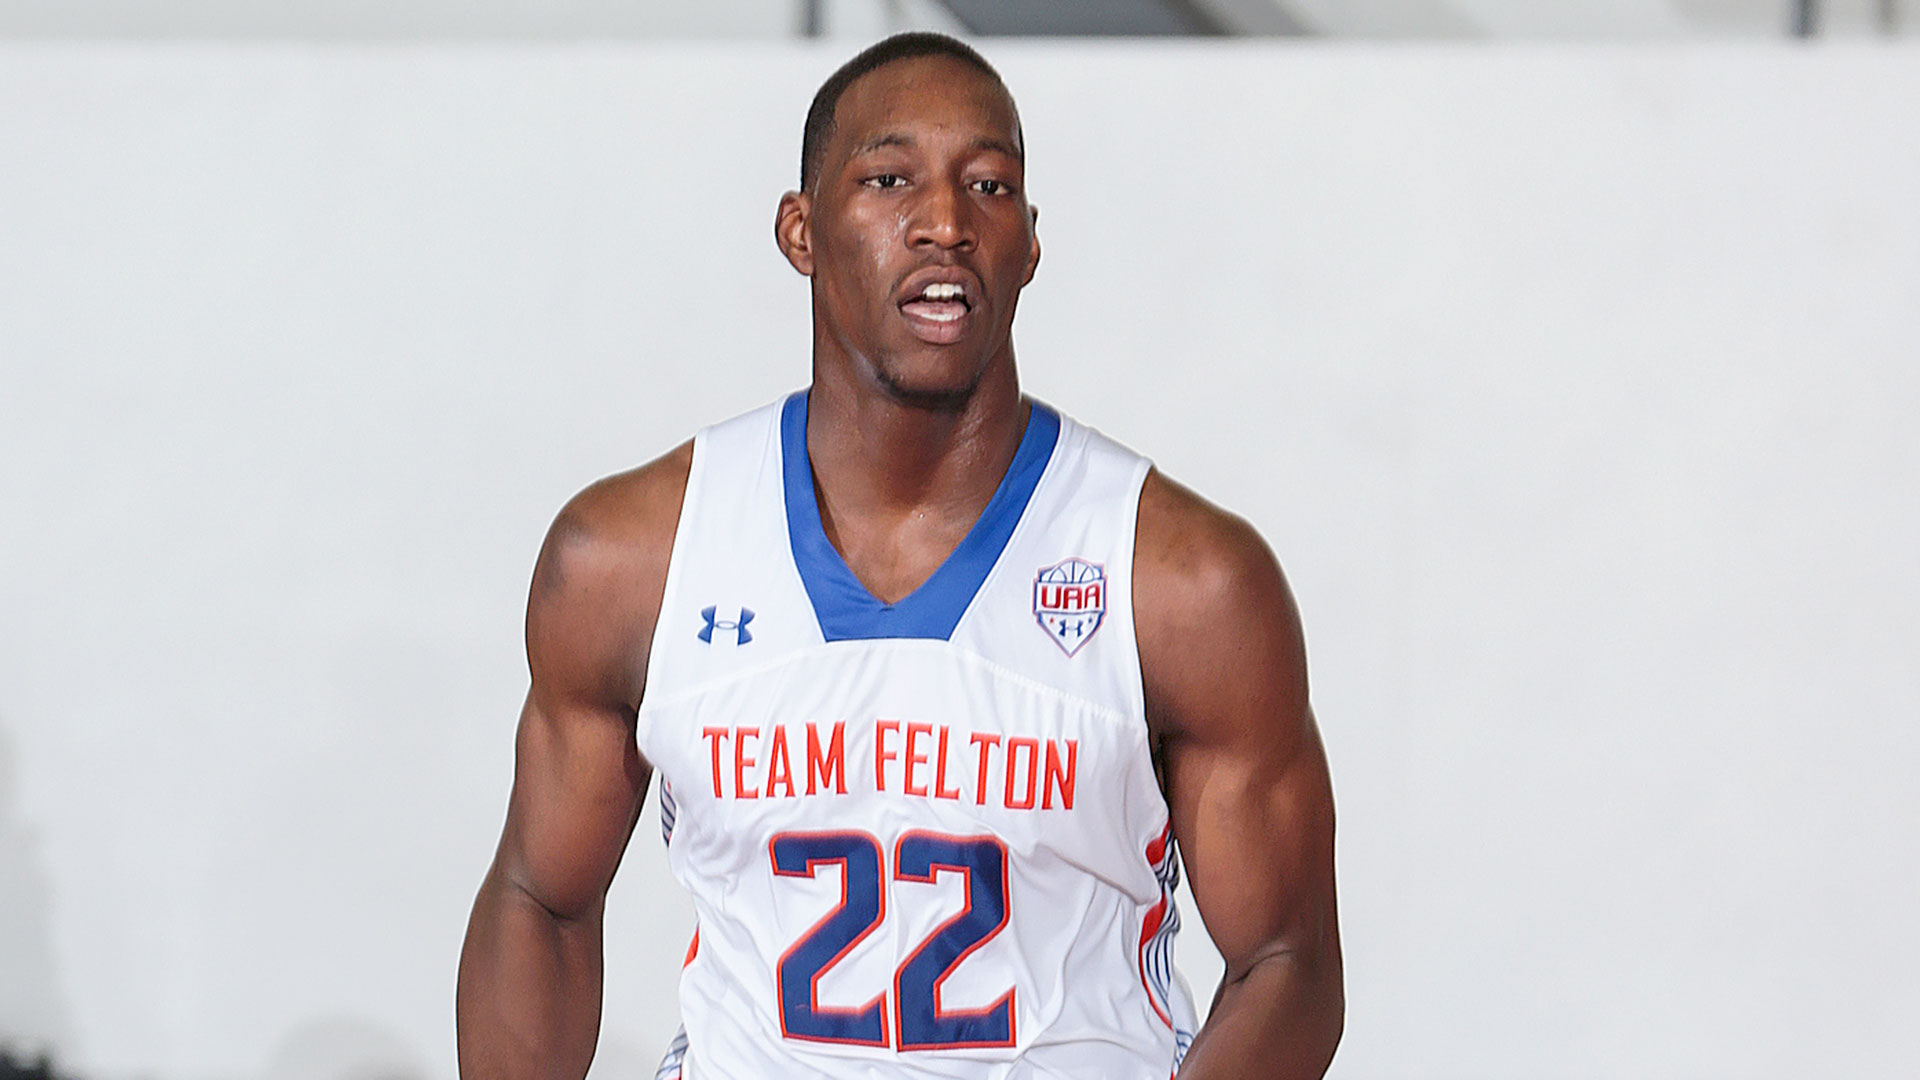 Kentucky lands another top 25 prospect in Bam Adebayo ...